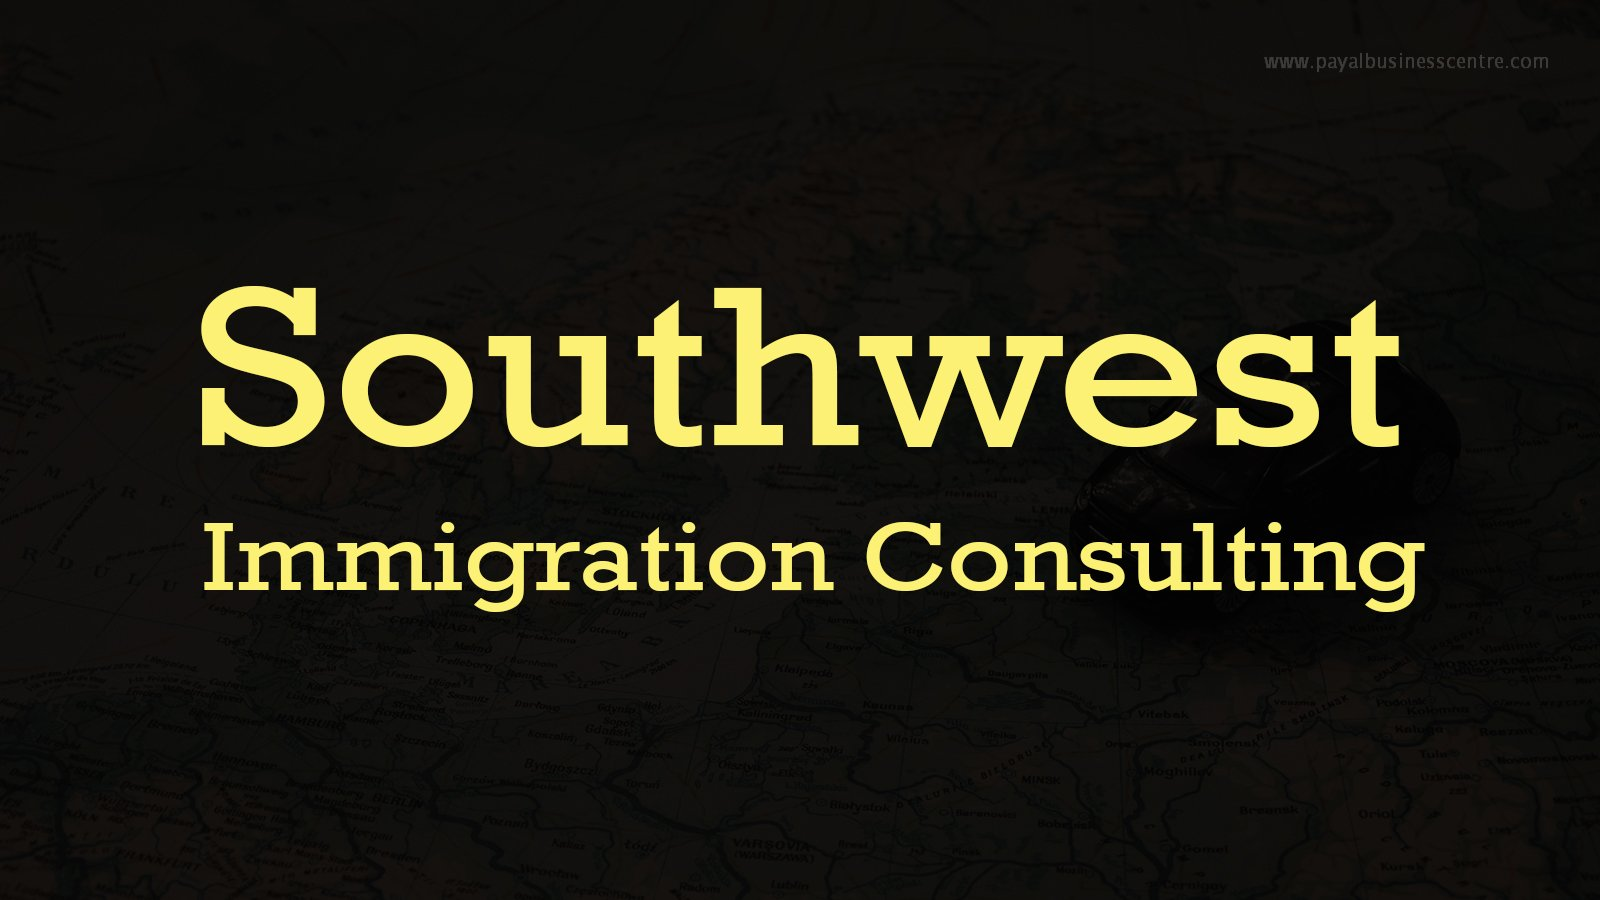 Southwest Immigration Consulting